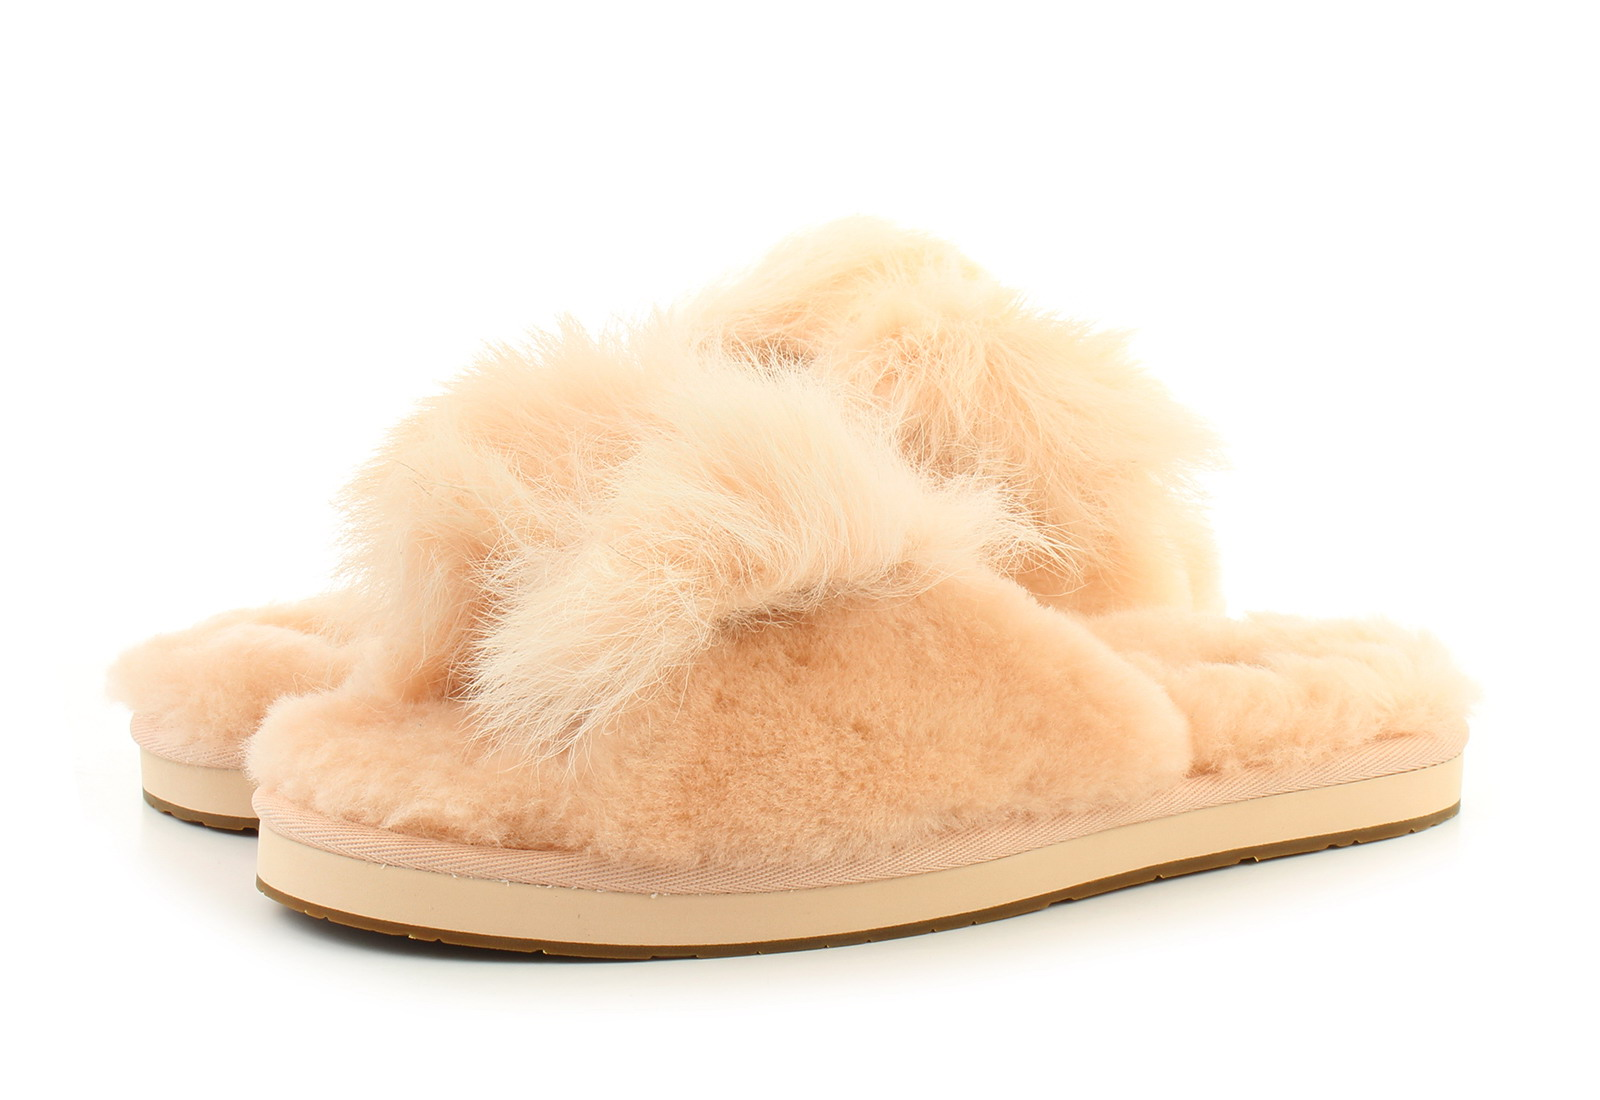 24250968994 Ugg Slippers - Mirabelle Slipper - 1095102-amb - Online shop for sneakers,  shoes and boots